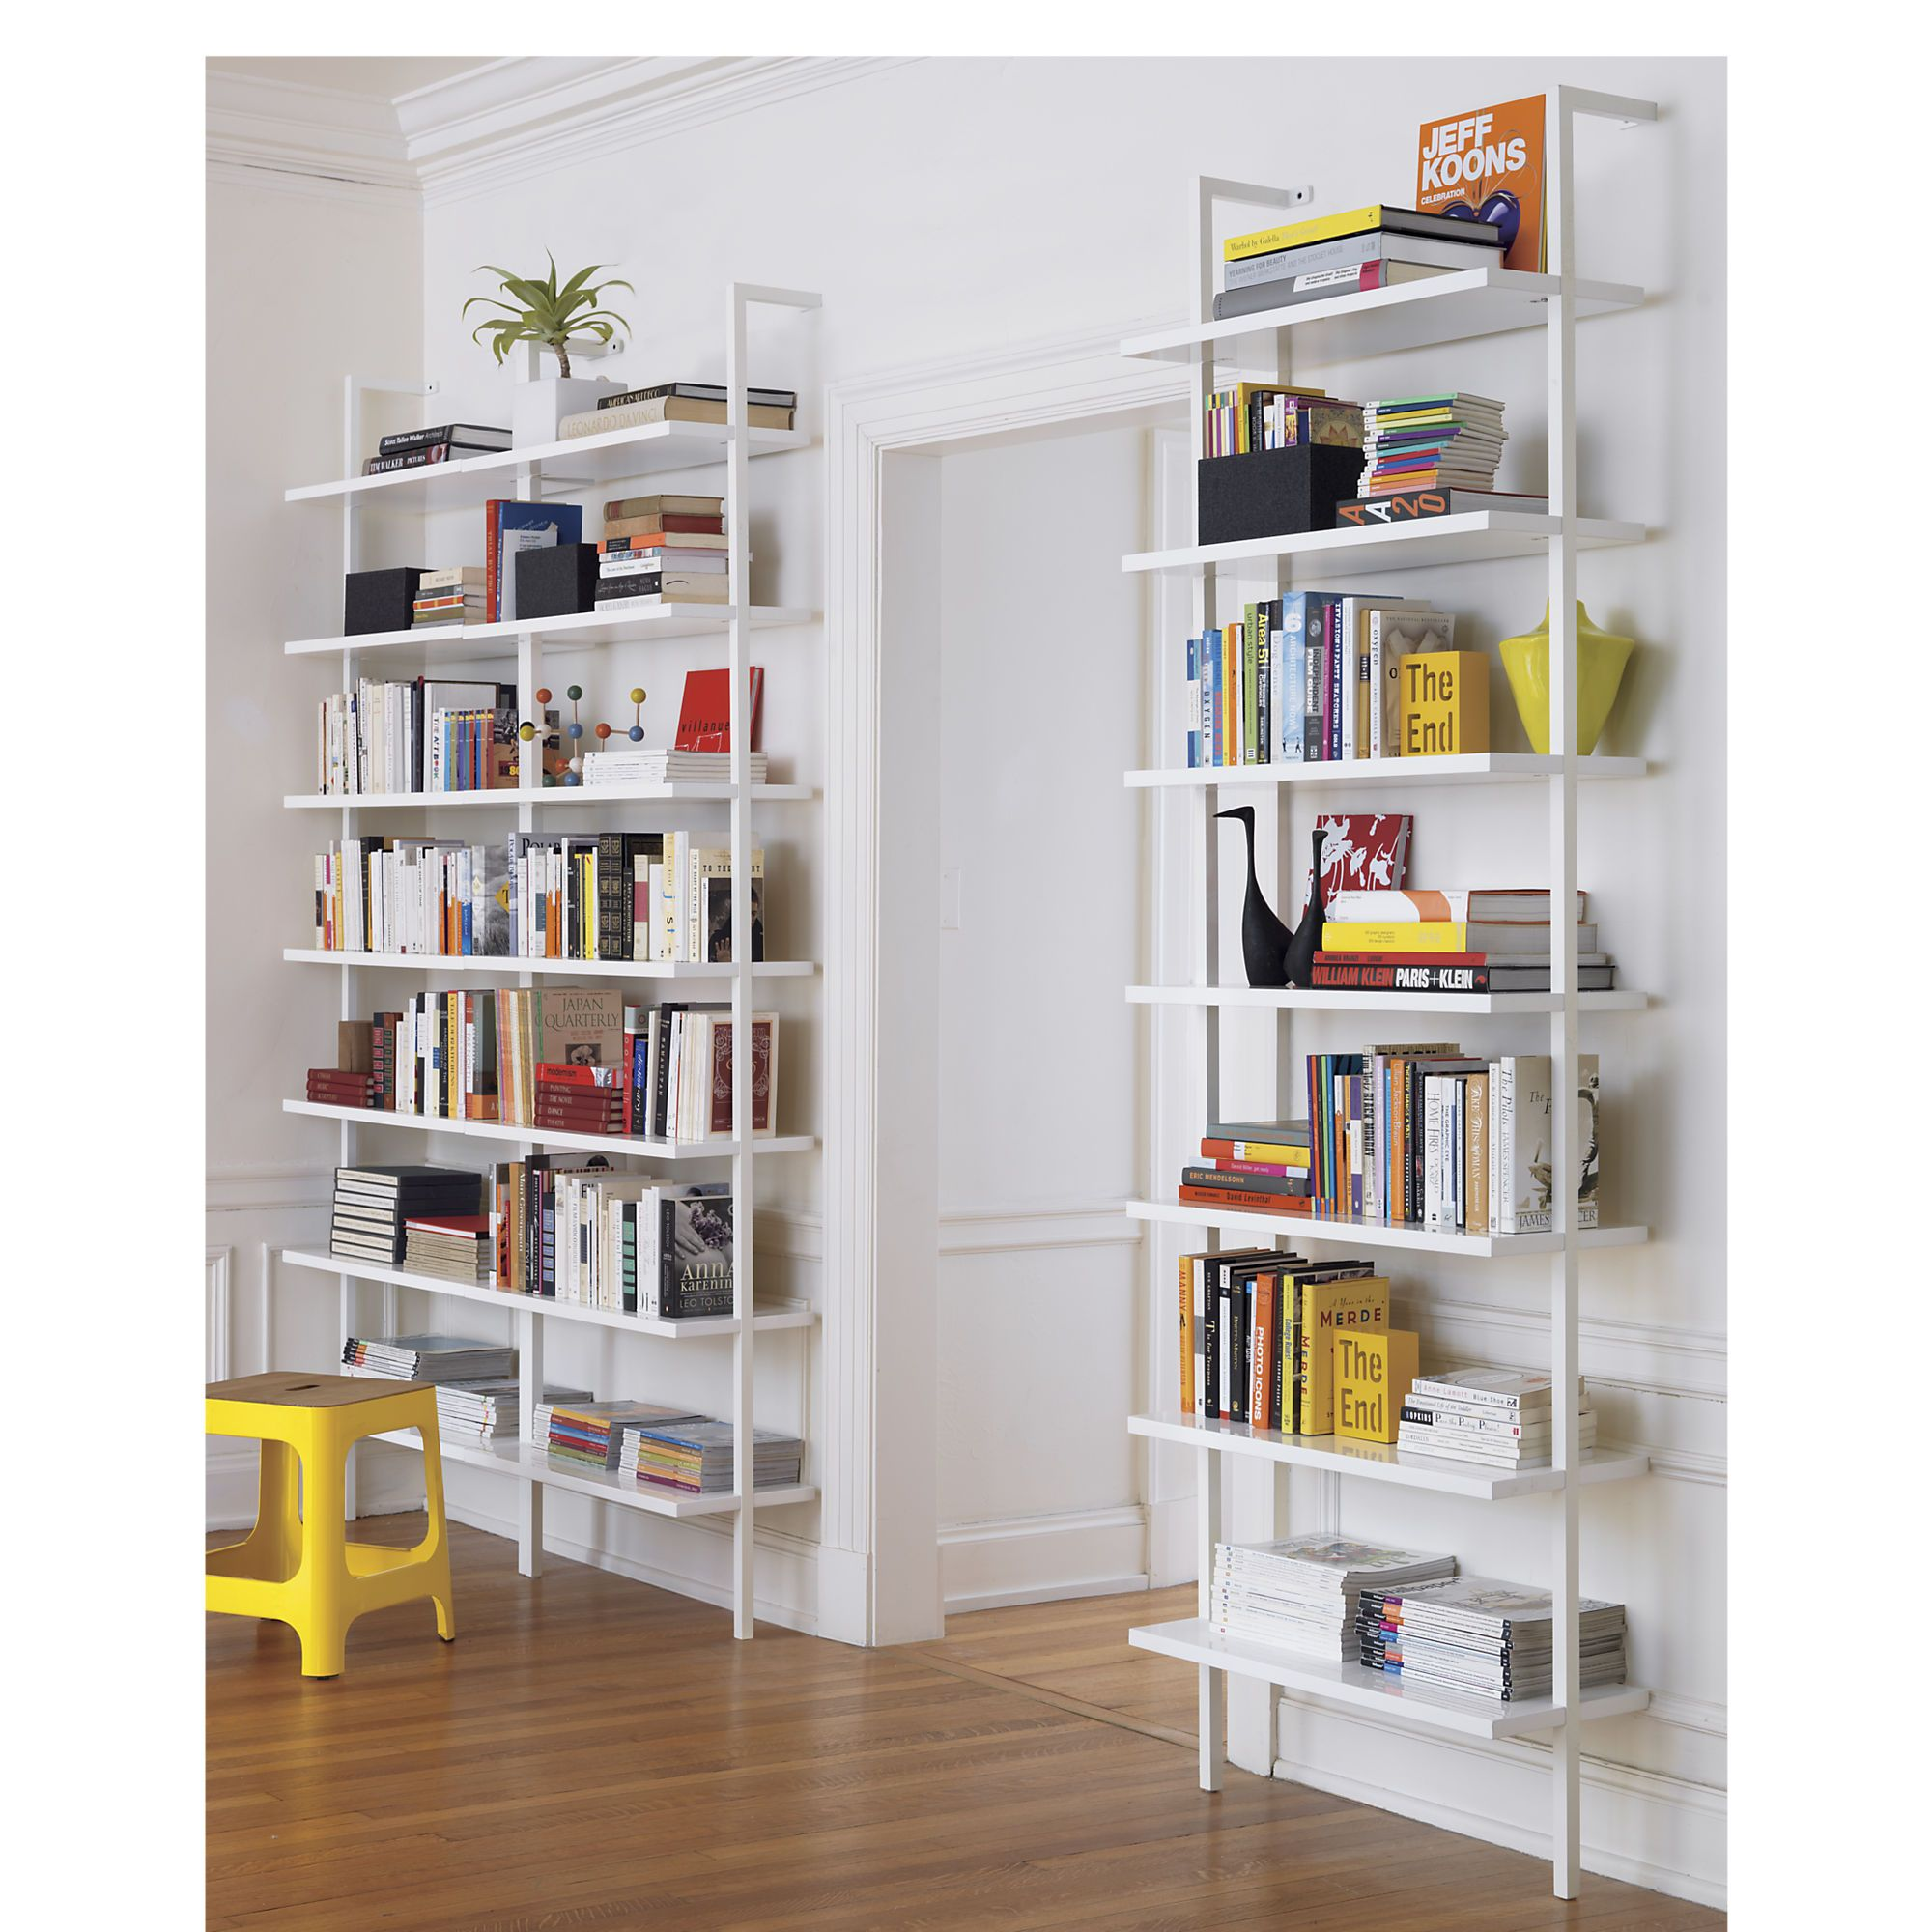 in decorate how of bookcase units on size ideas bookcases design shelving shelves to room decorating images wonderful living bookshelf pinterest open full best